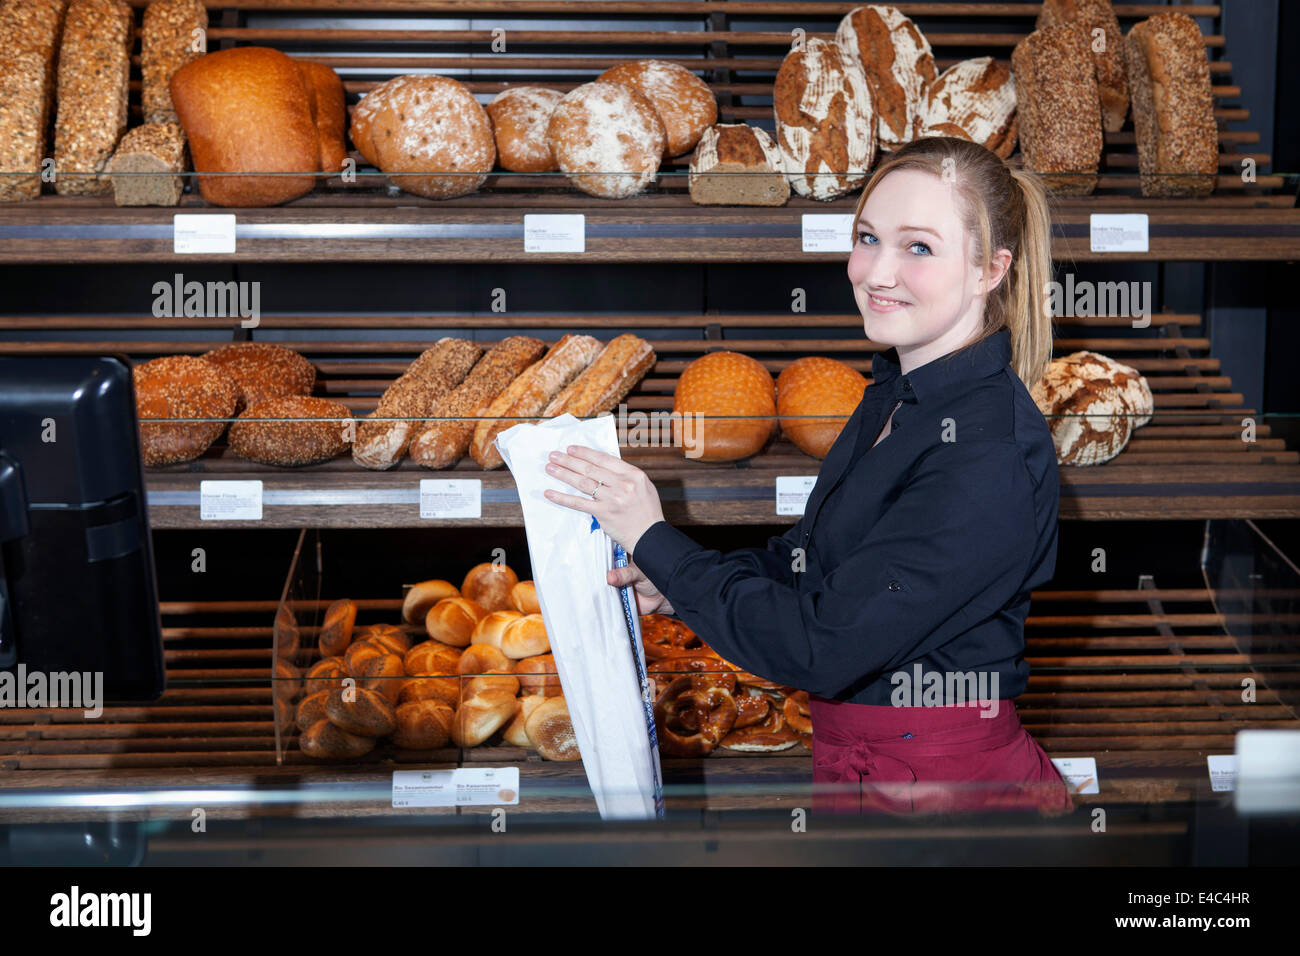 Female shop assistant in bakery packing bread into bag - Stock Image